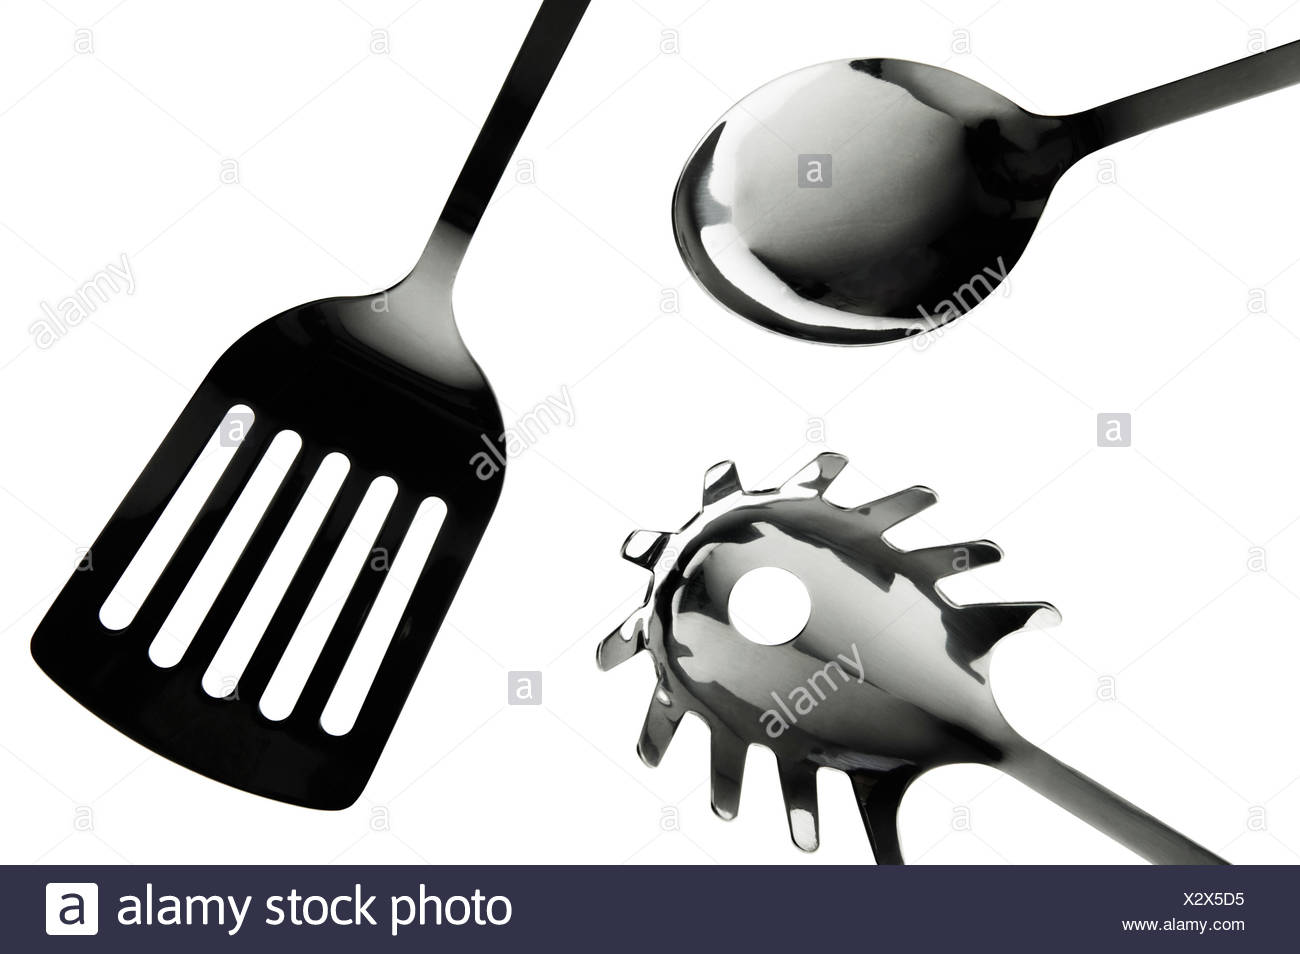 Kitchen Implements, Close Up   Stock Image